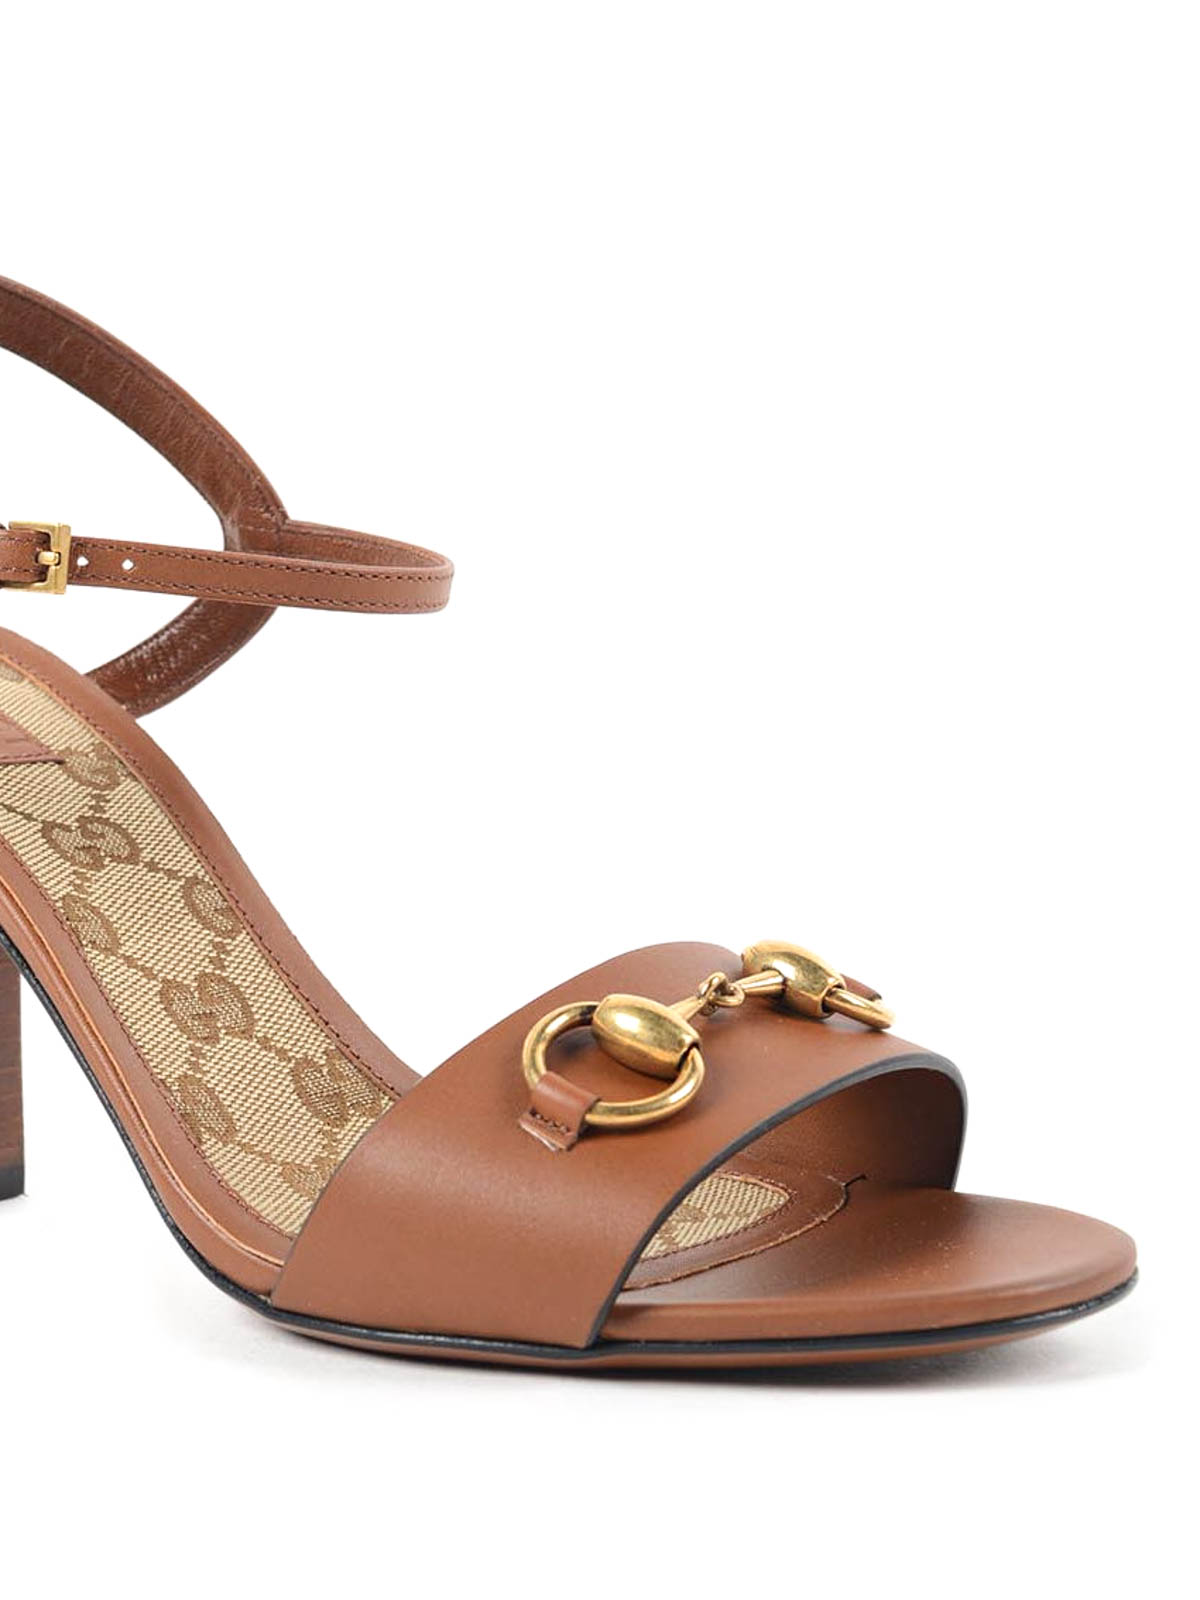 46e7bfd5617 Gucci - Mid-heeled sandals - sandals - 384823 A3N00 2535